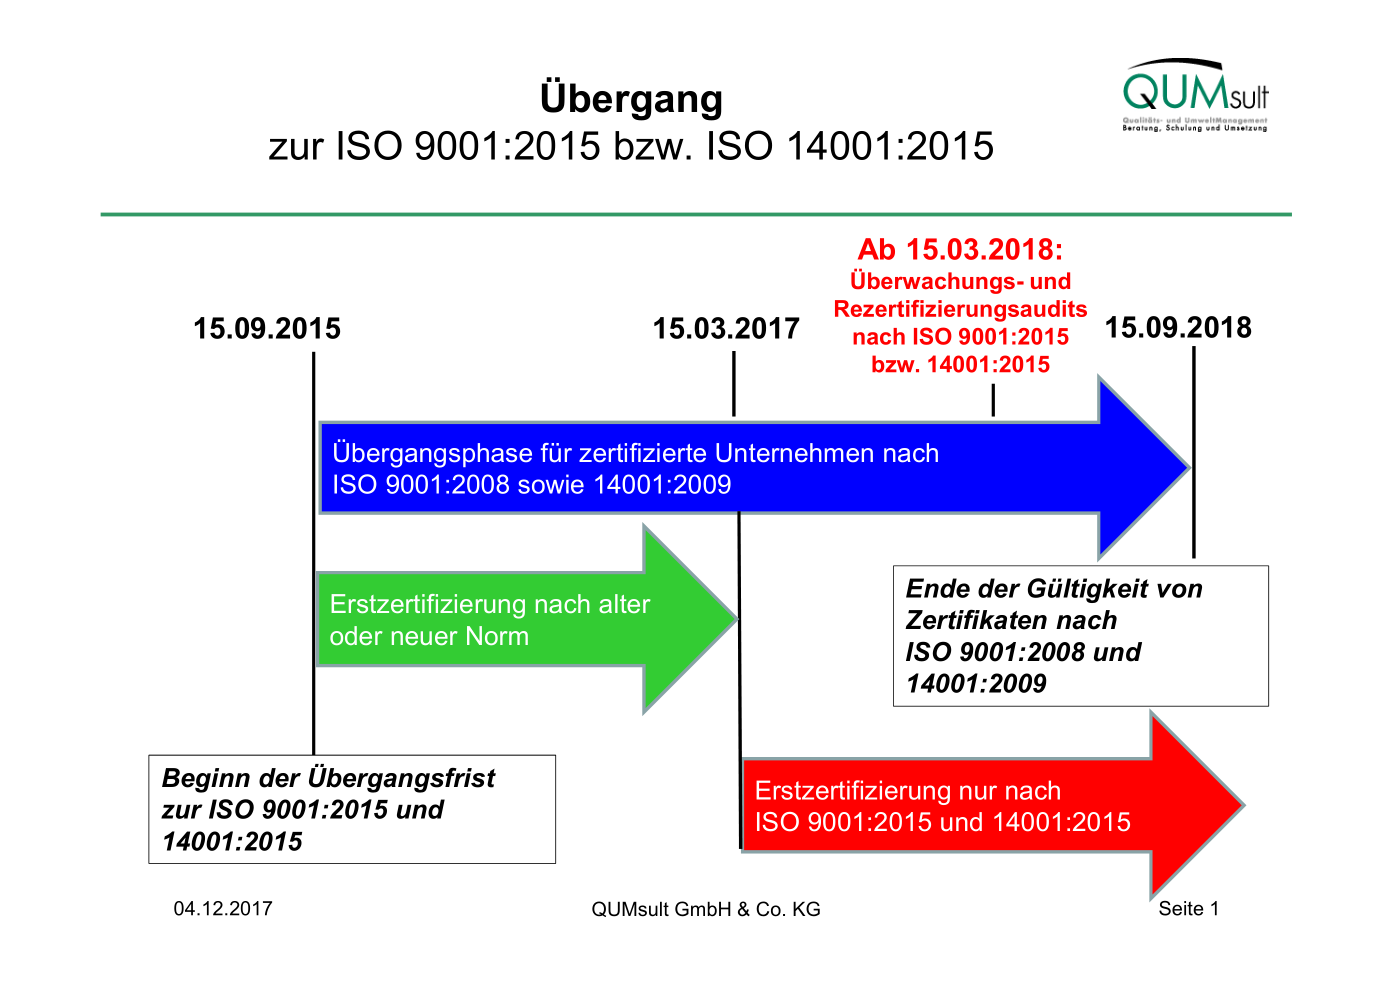 Übergang zur ISO 9001:2015 bzw. ISO 14001:2015